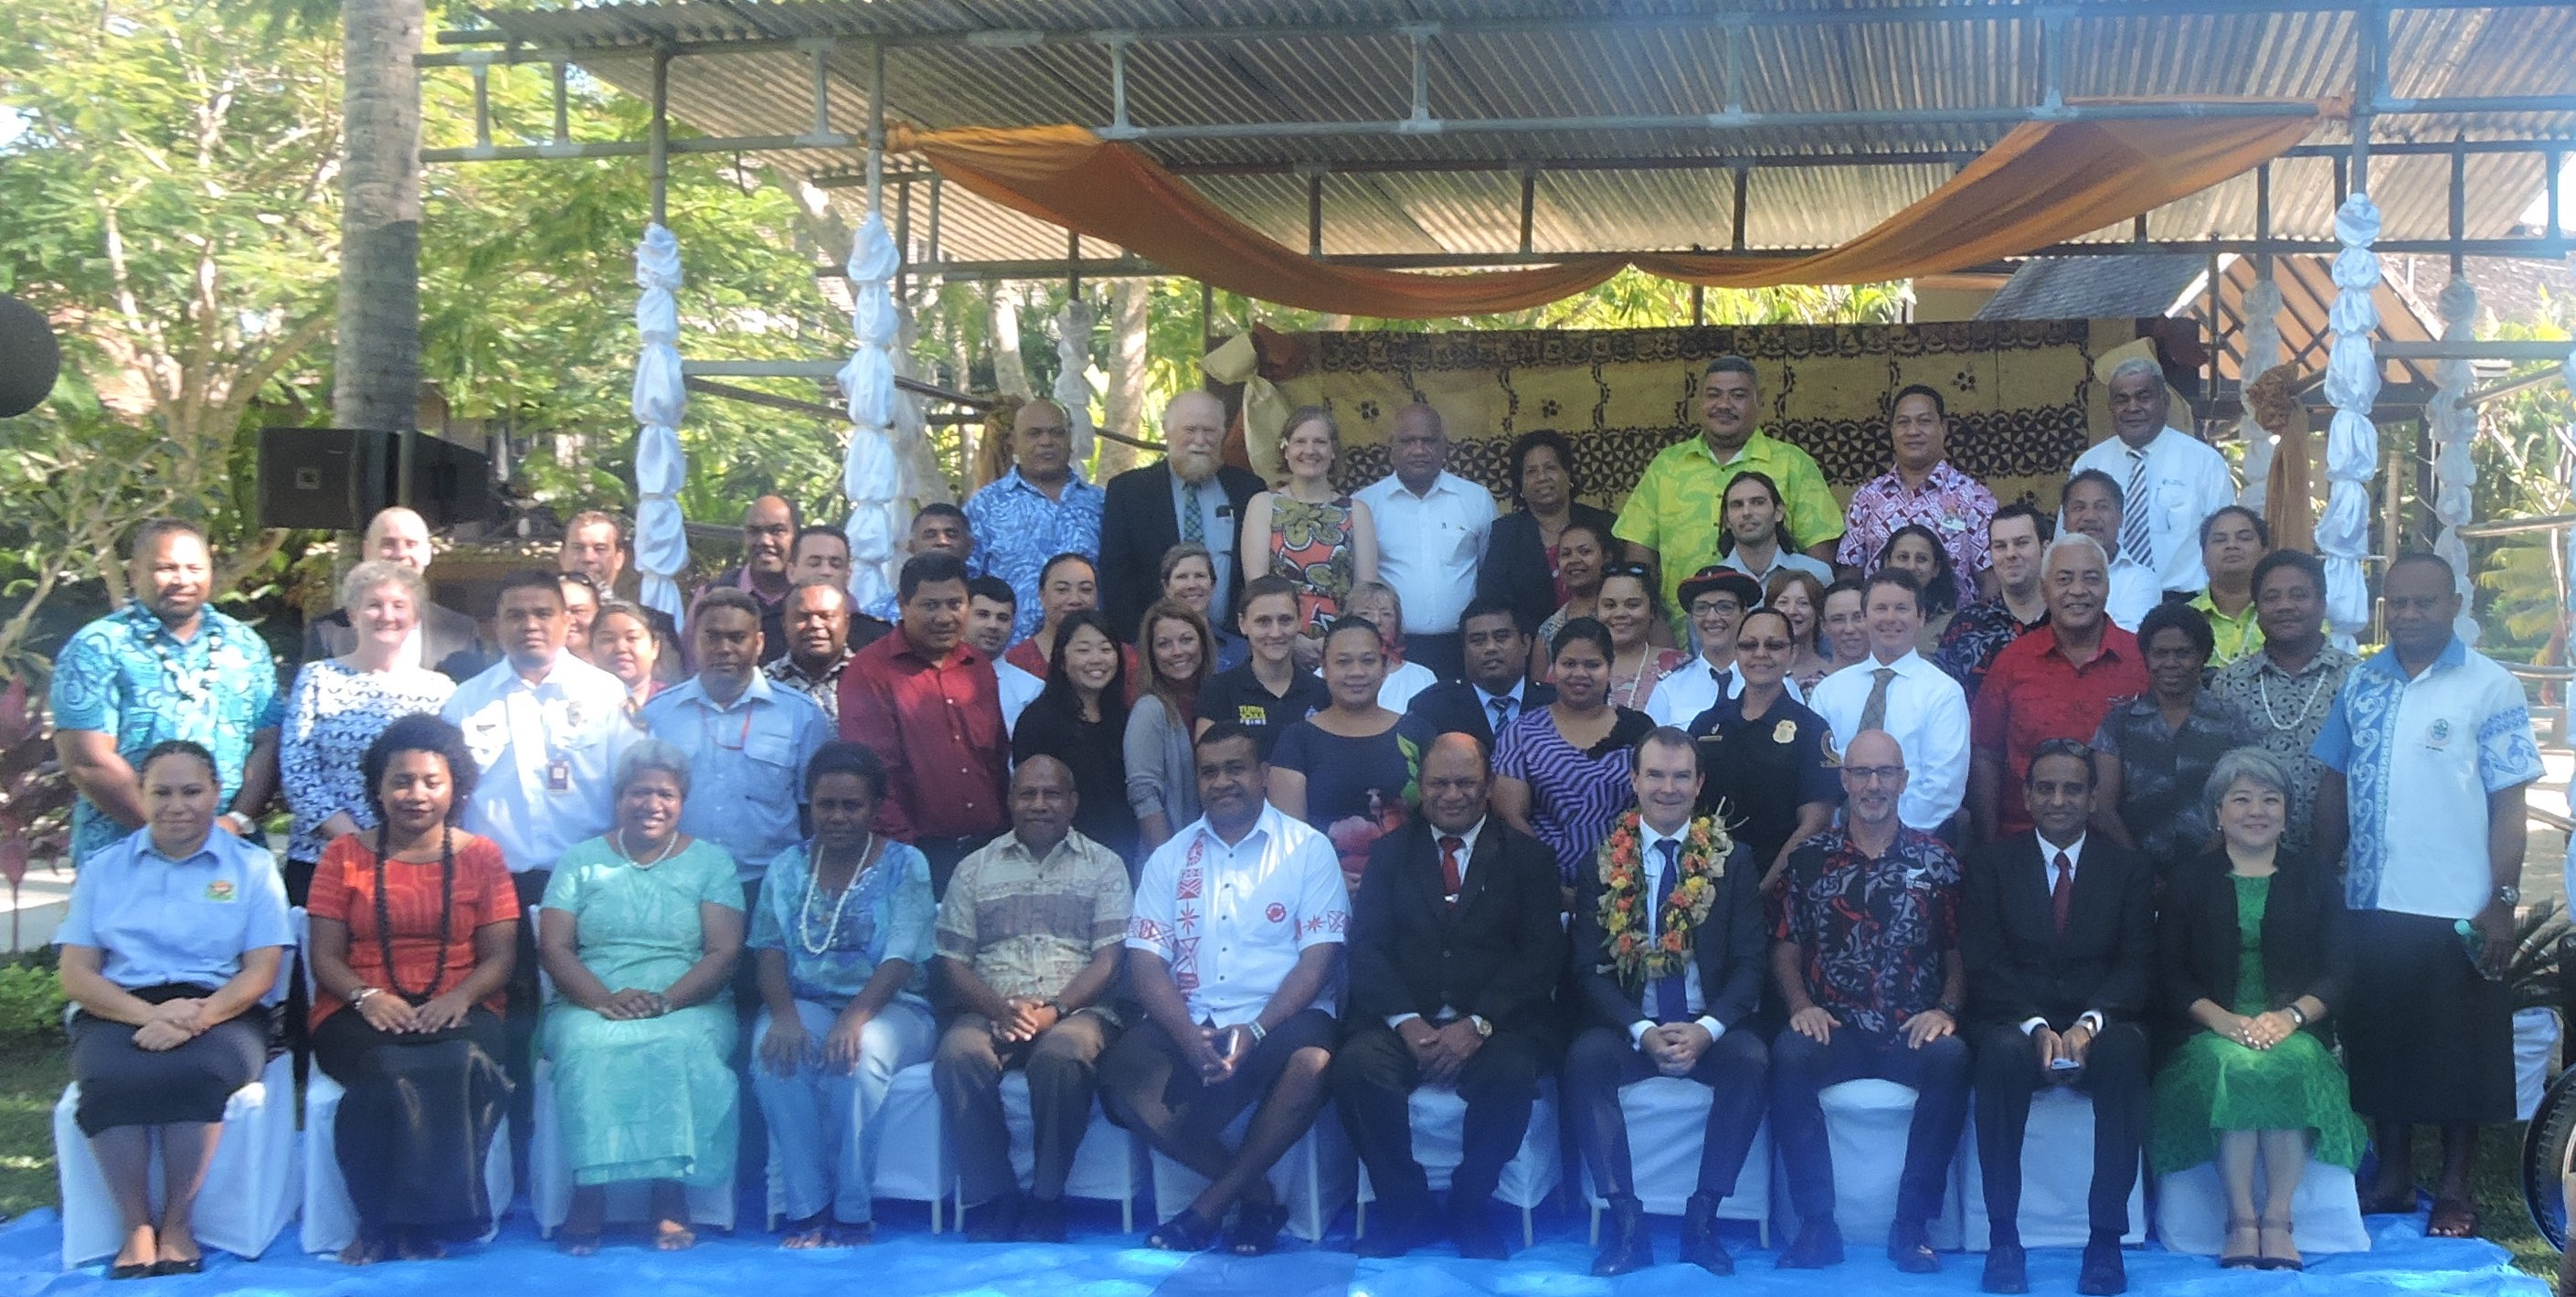 CITES regional workshop - group photo